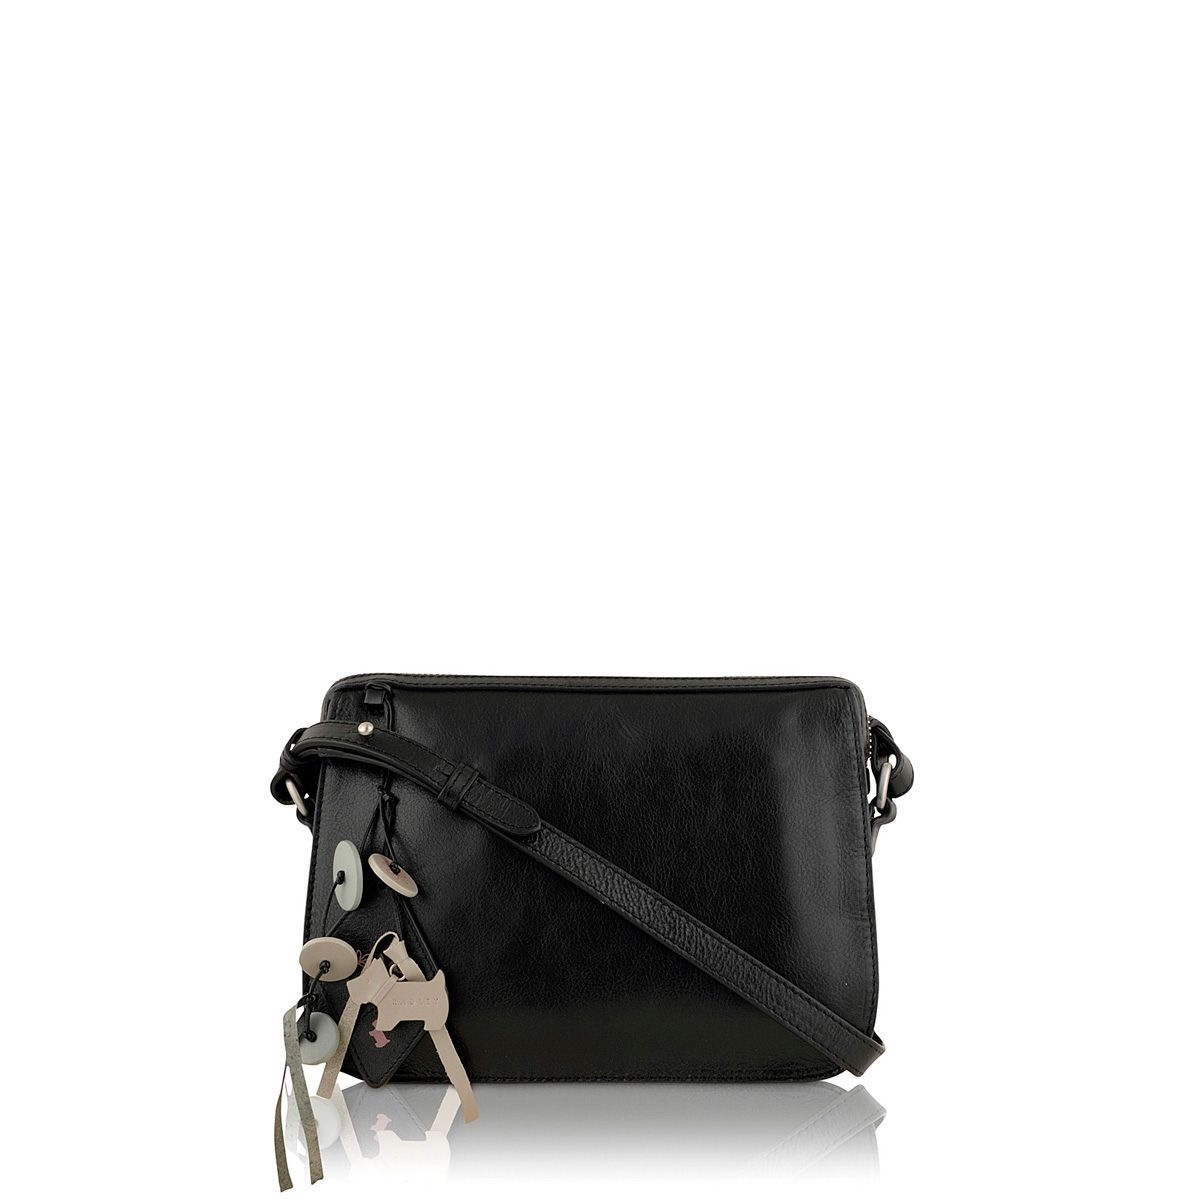 Black small cross body